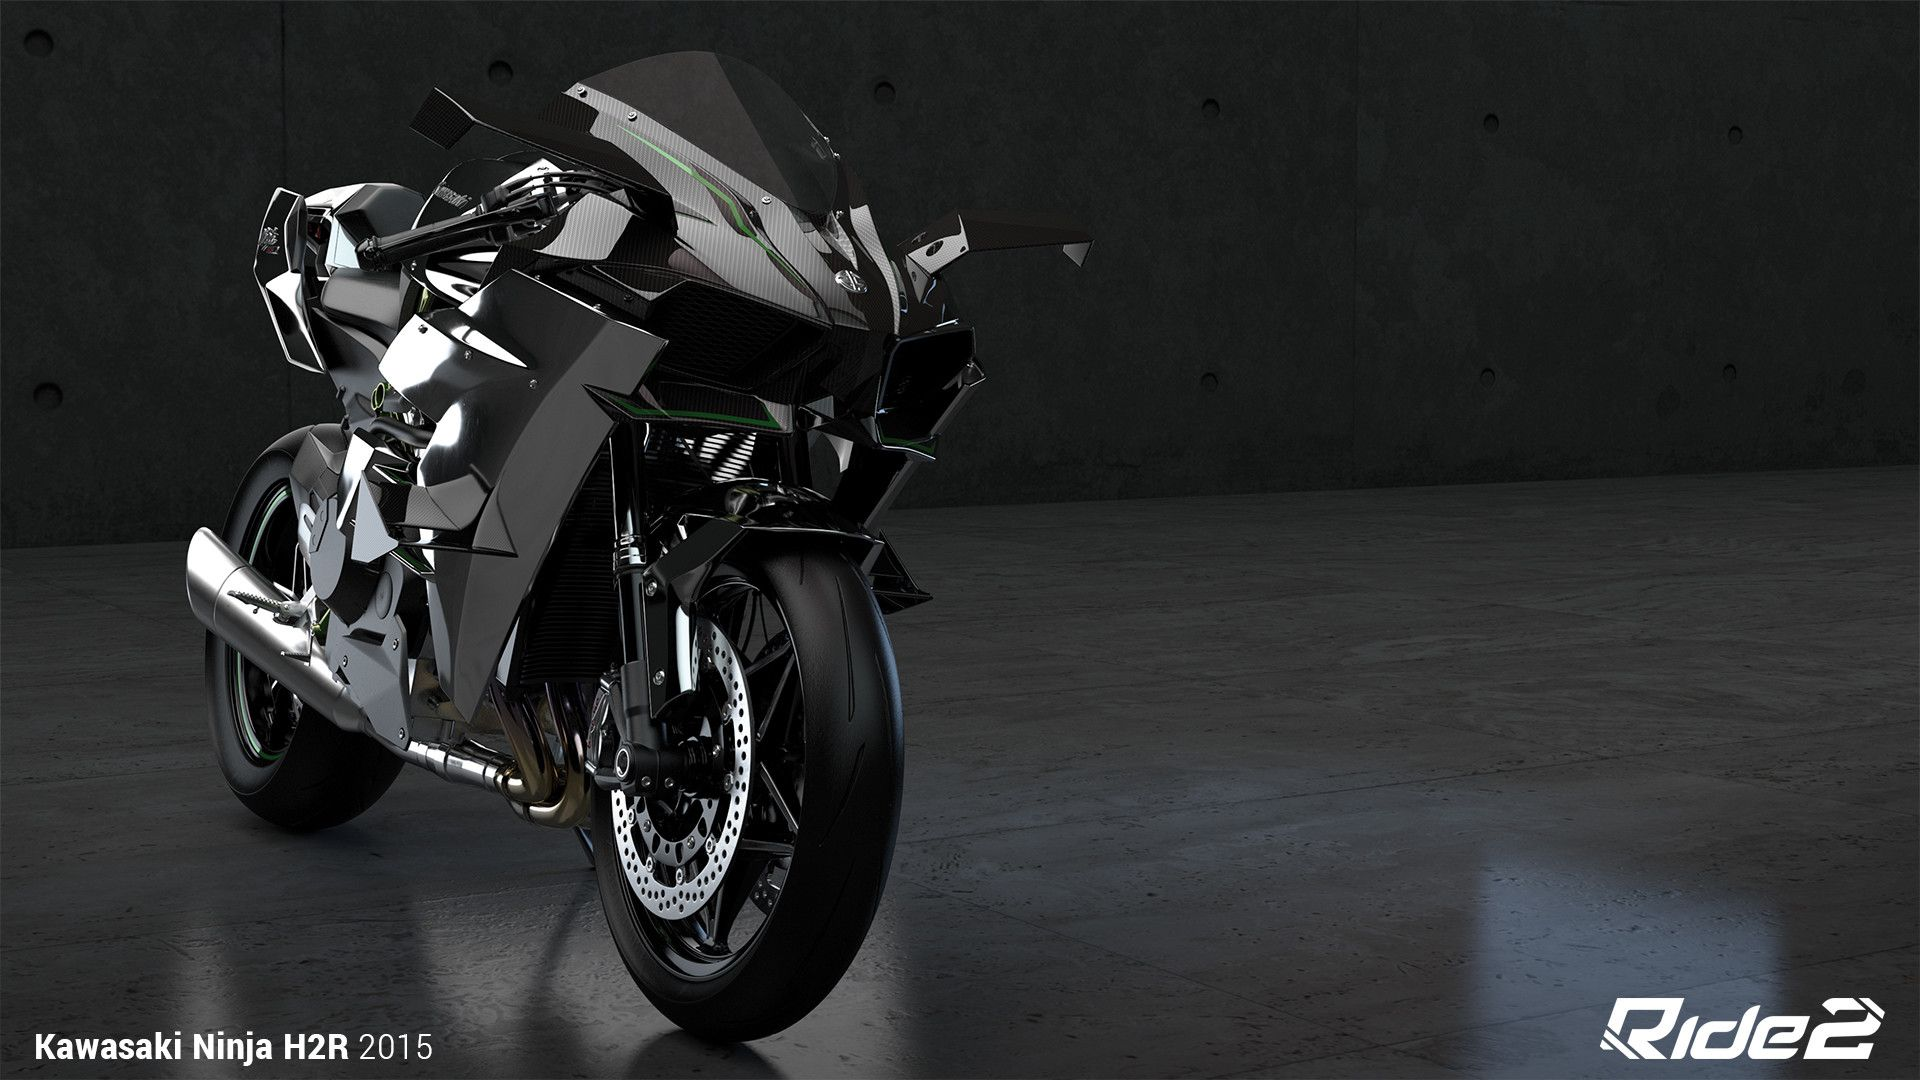 Kawasaki Ninja H2r Wallpapers 1080p Ride 2 Kawasaki Ninja